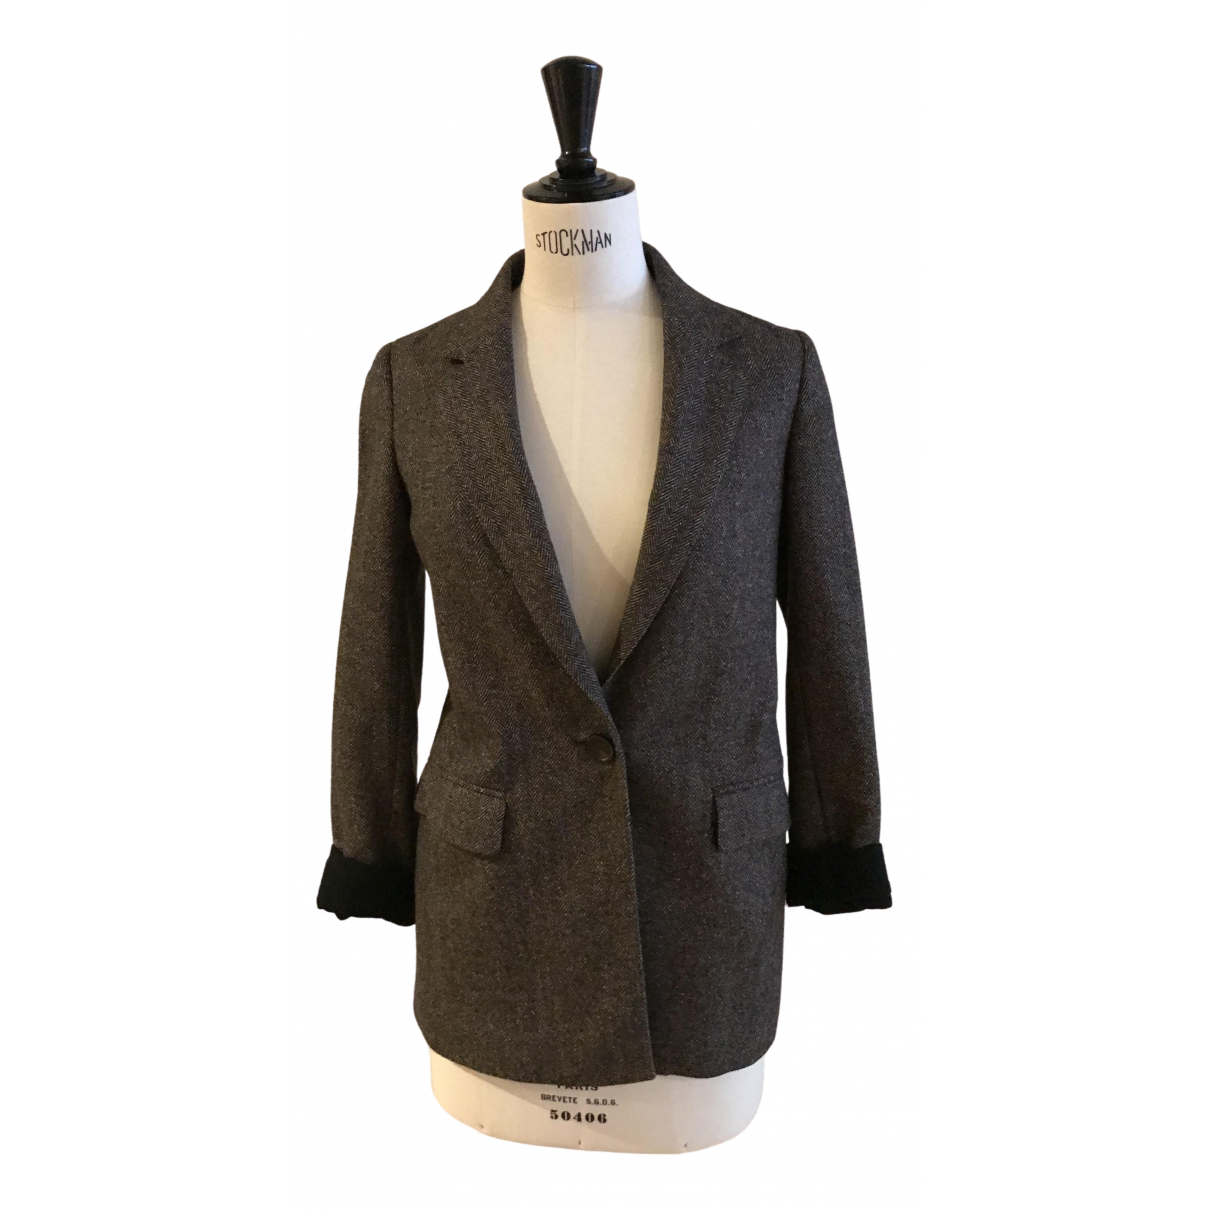 Massimo Dutti \N Brown Wool jacket for Women 34 FR